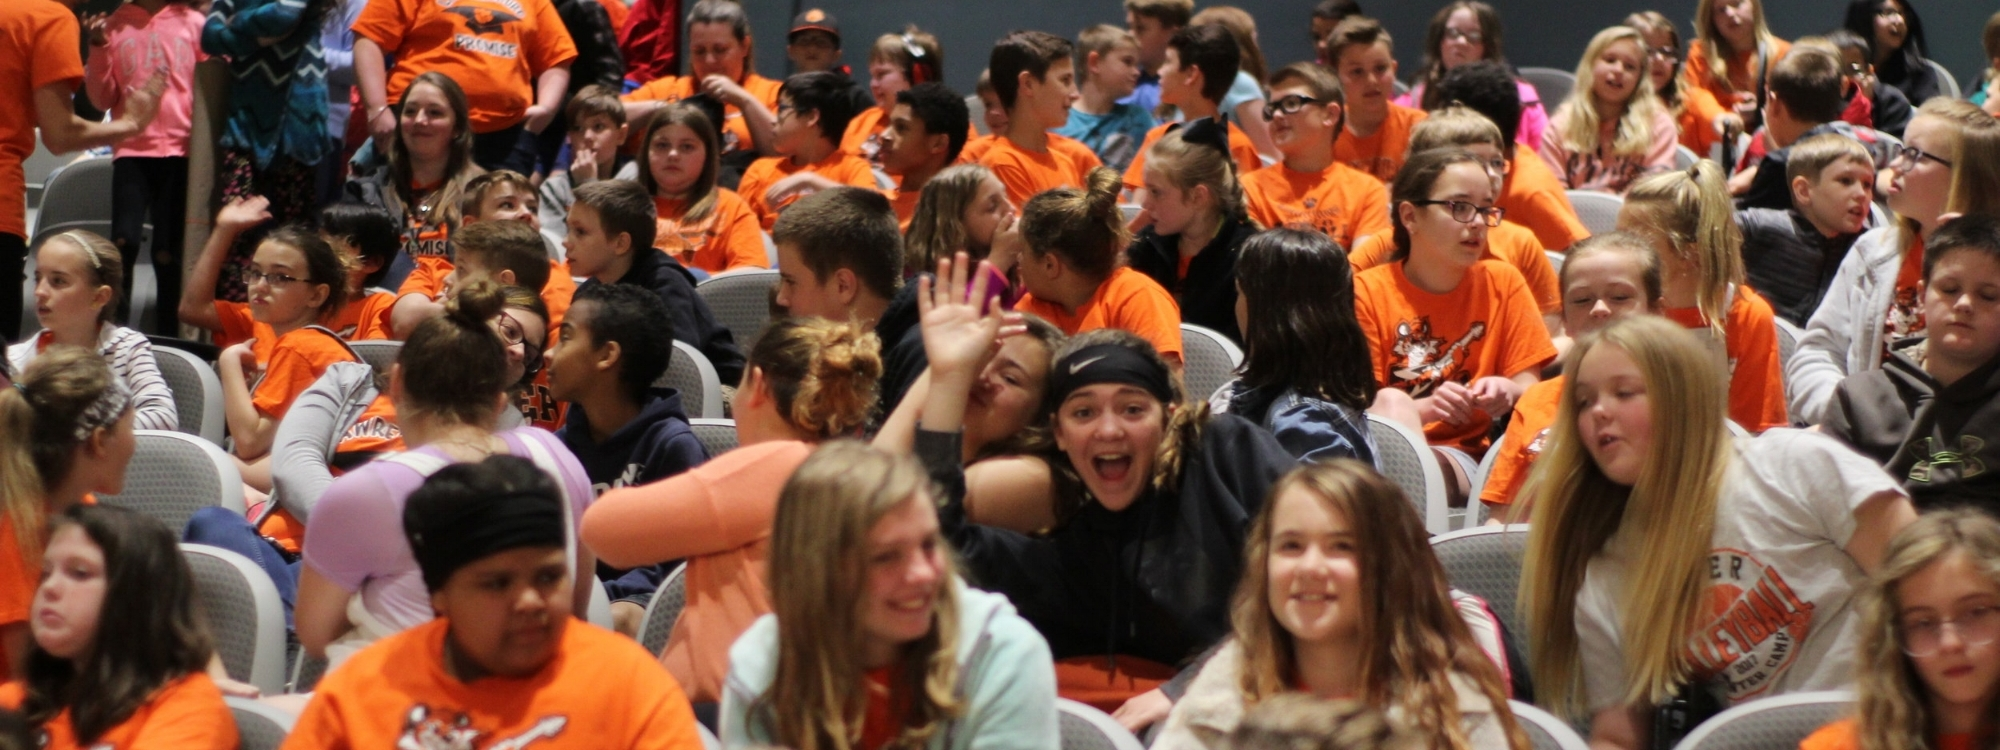 The excitement of Danny Dollar Academy Day at Northern Kentucky University